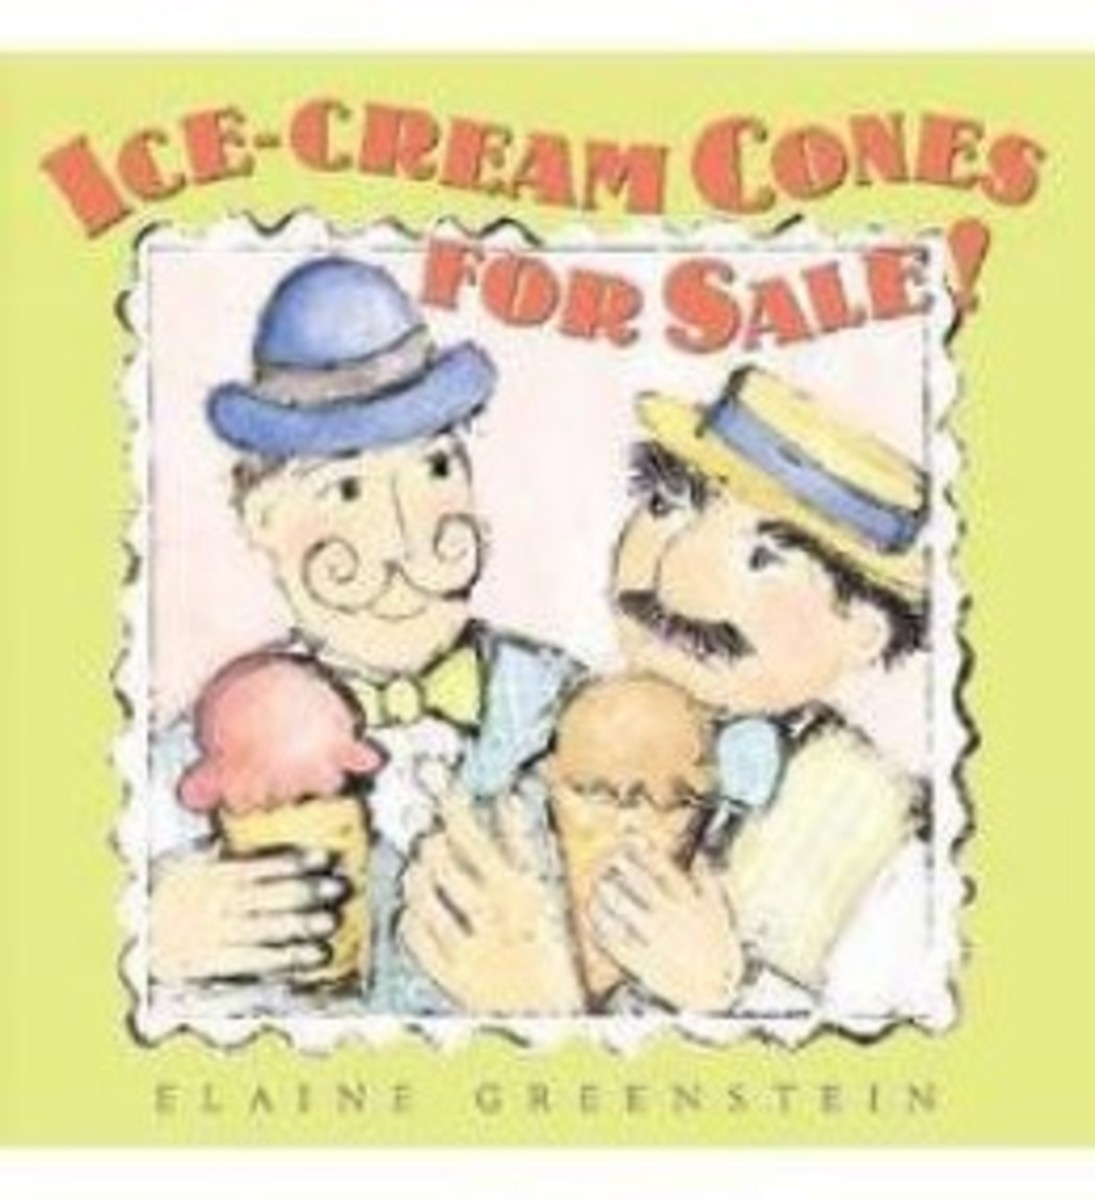 Ice Cream Cones For Sale! by Elaine Greenstein